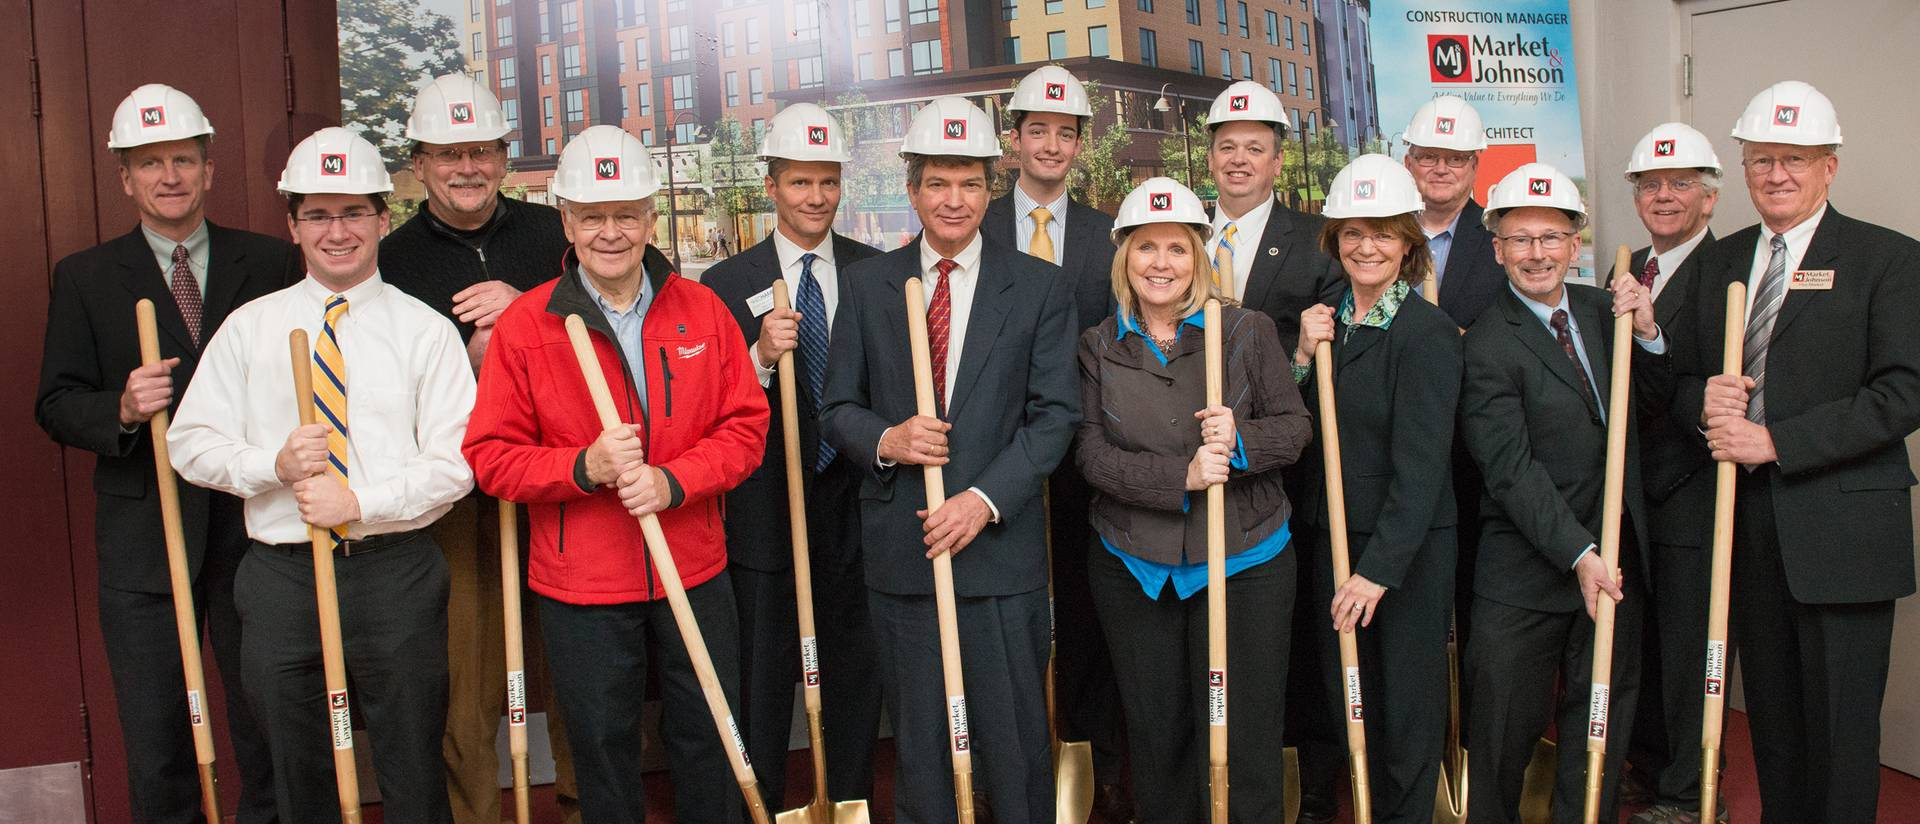 Haymarketing Landing groundbreaking ceremony